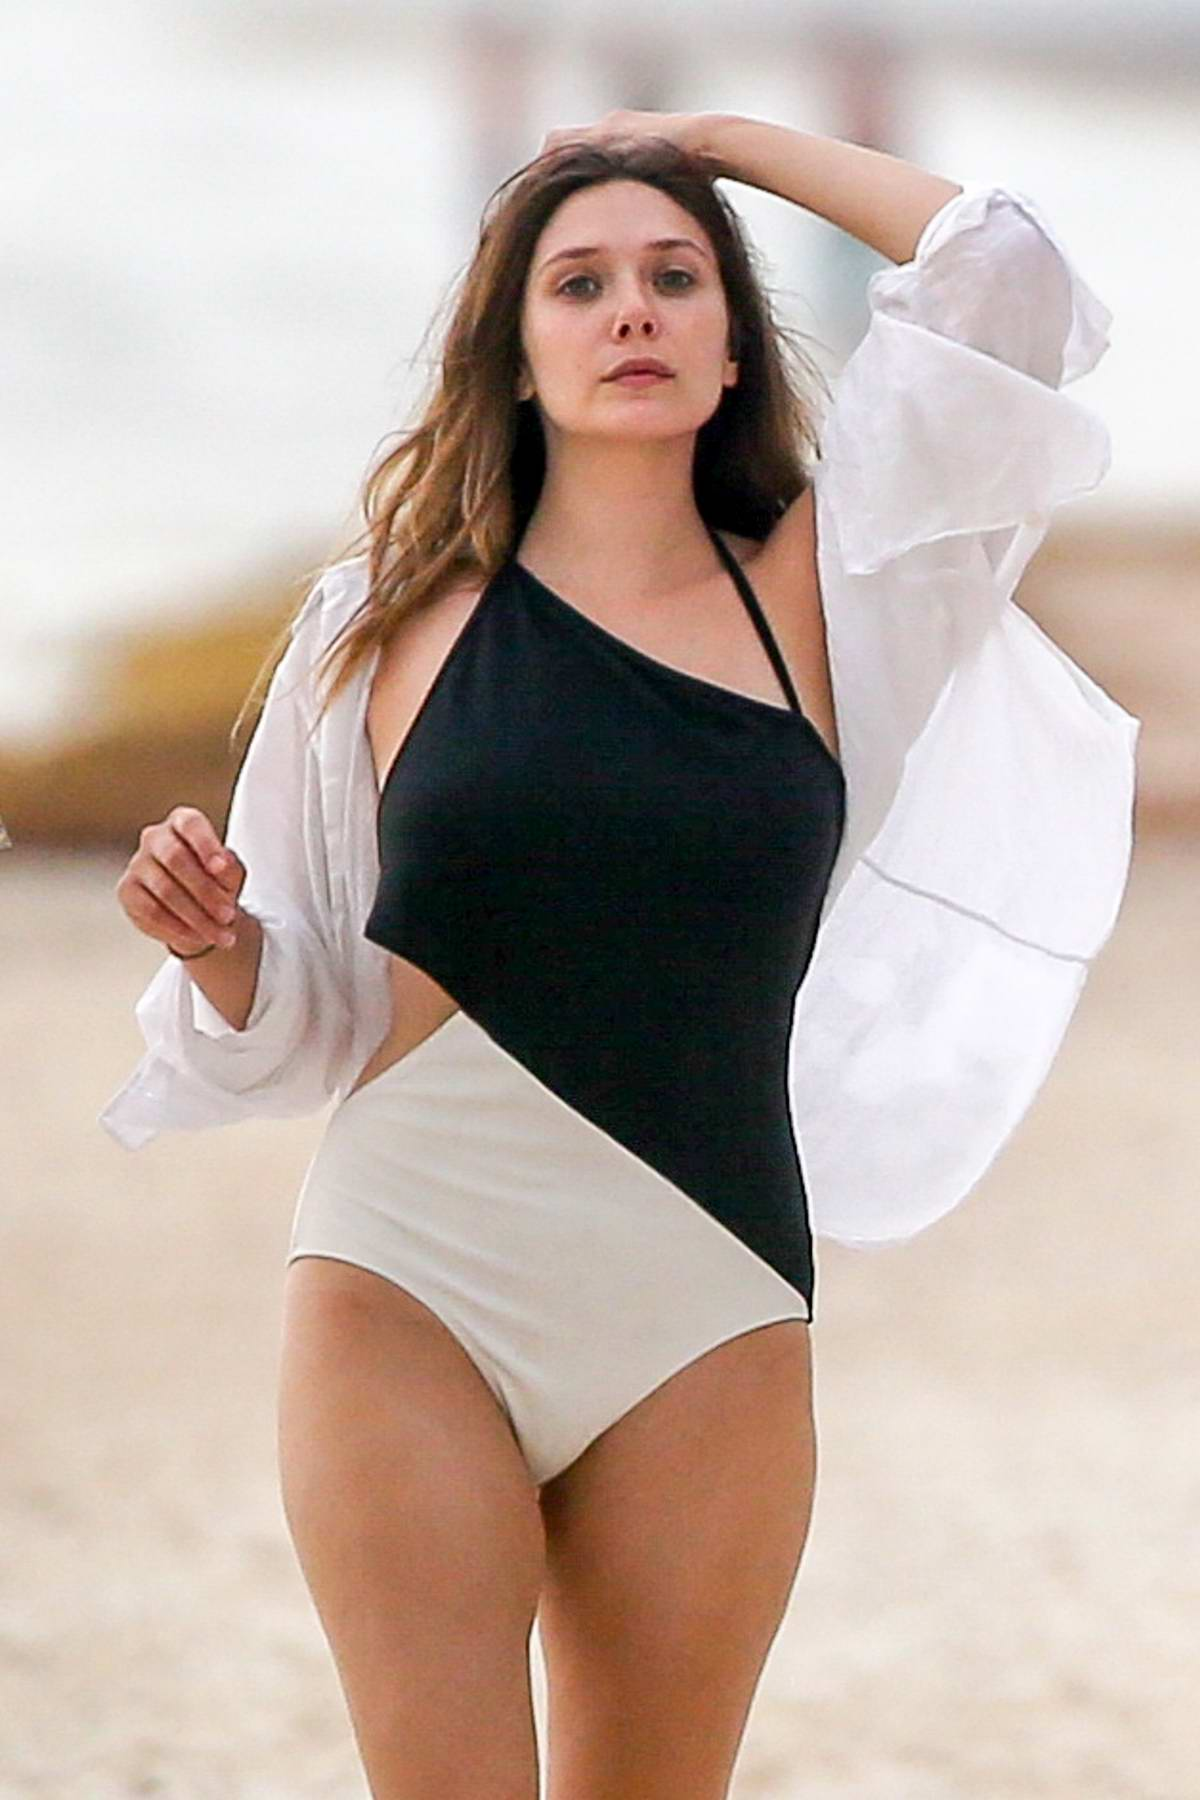 Elizabeth Olsen spotted in a swimsuit while spending a relaxing day at the beach with boyfriend Robbie Arnett in Mexico